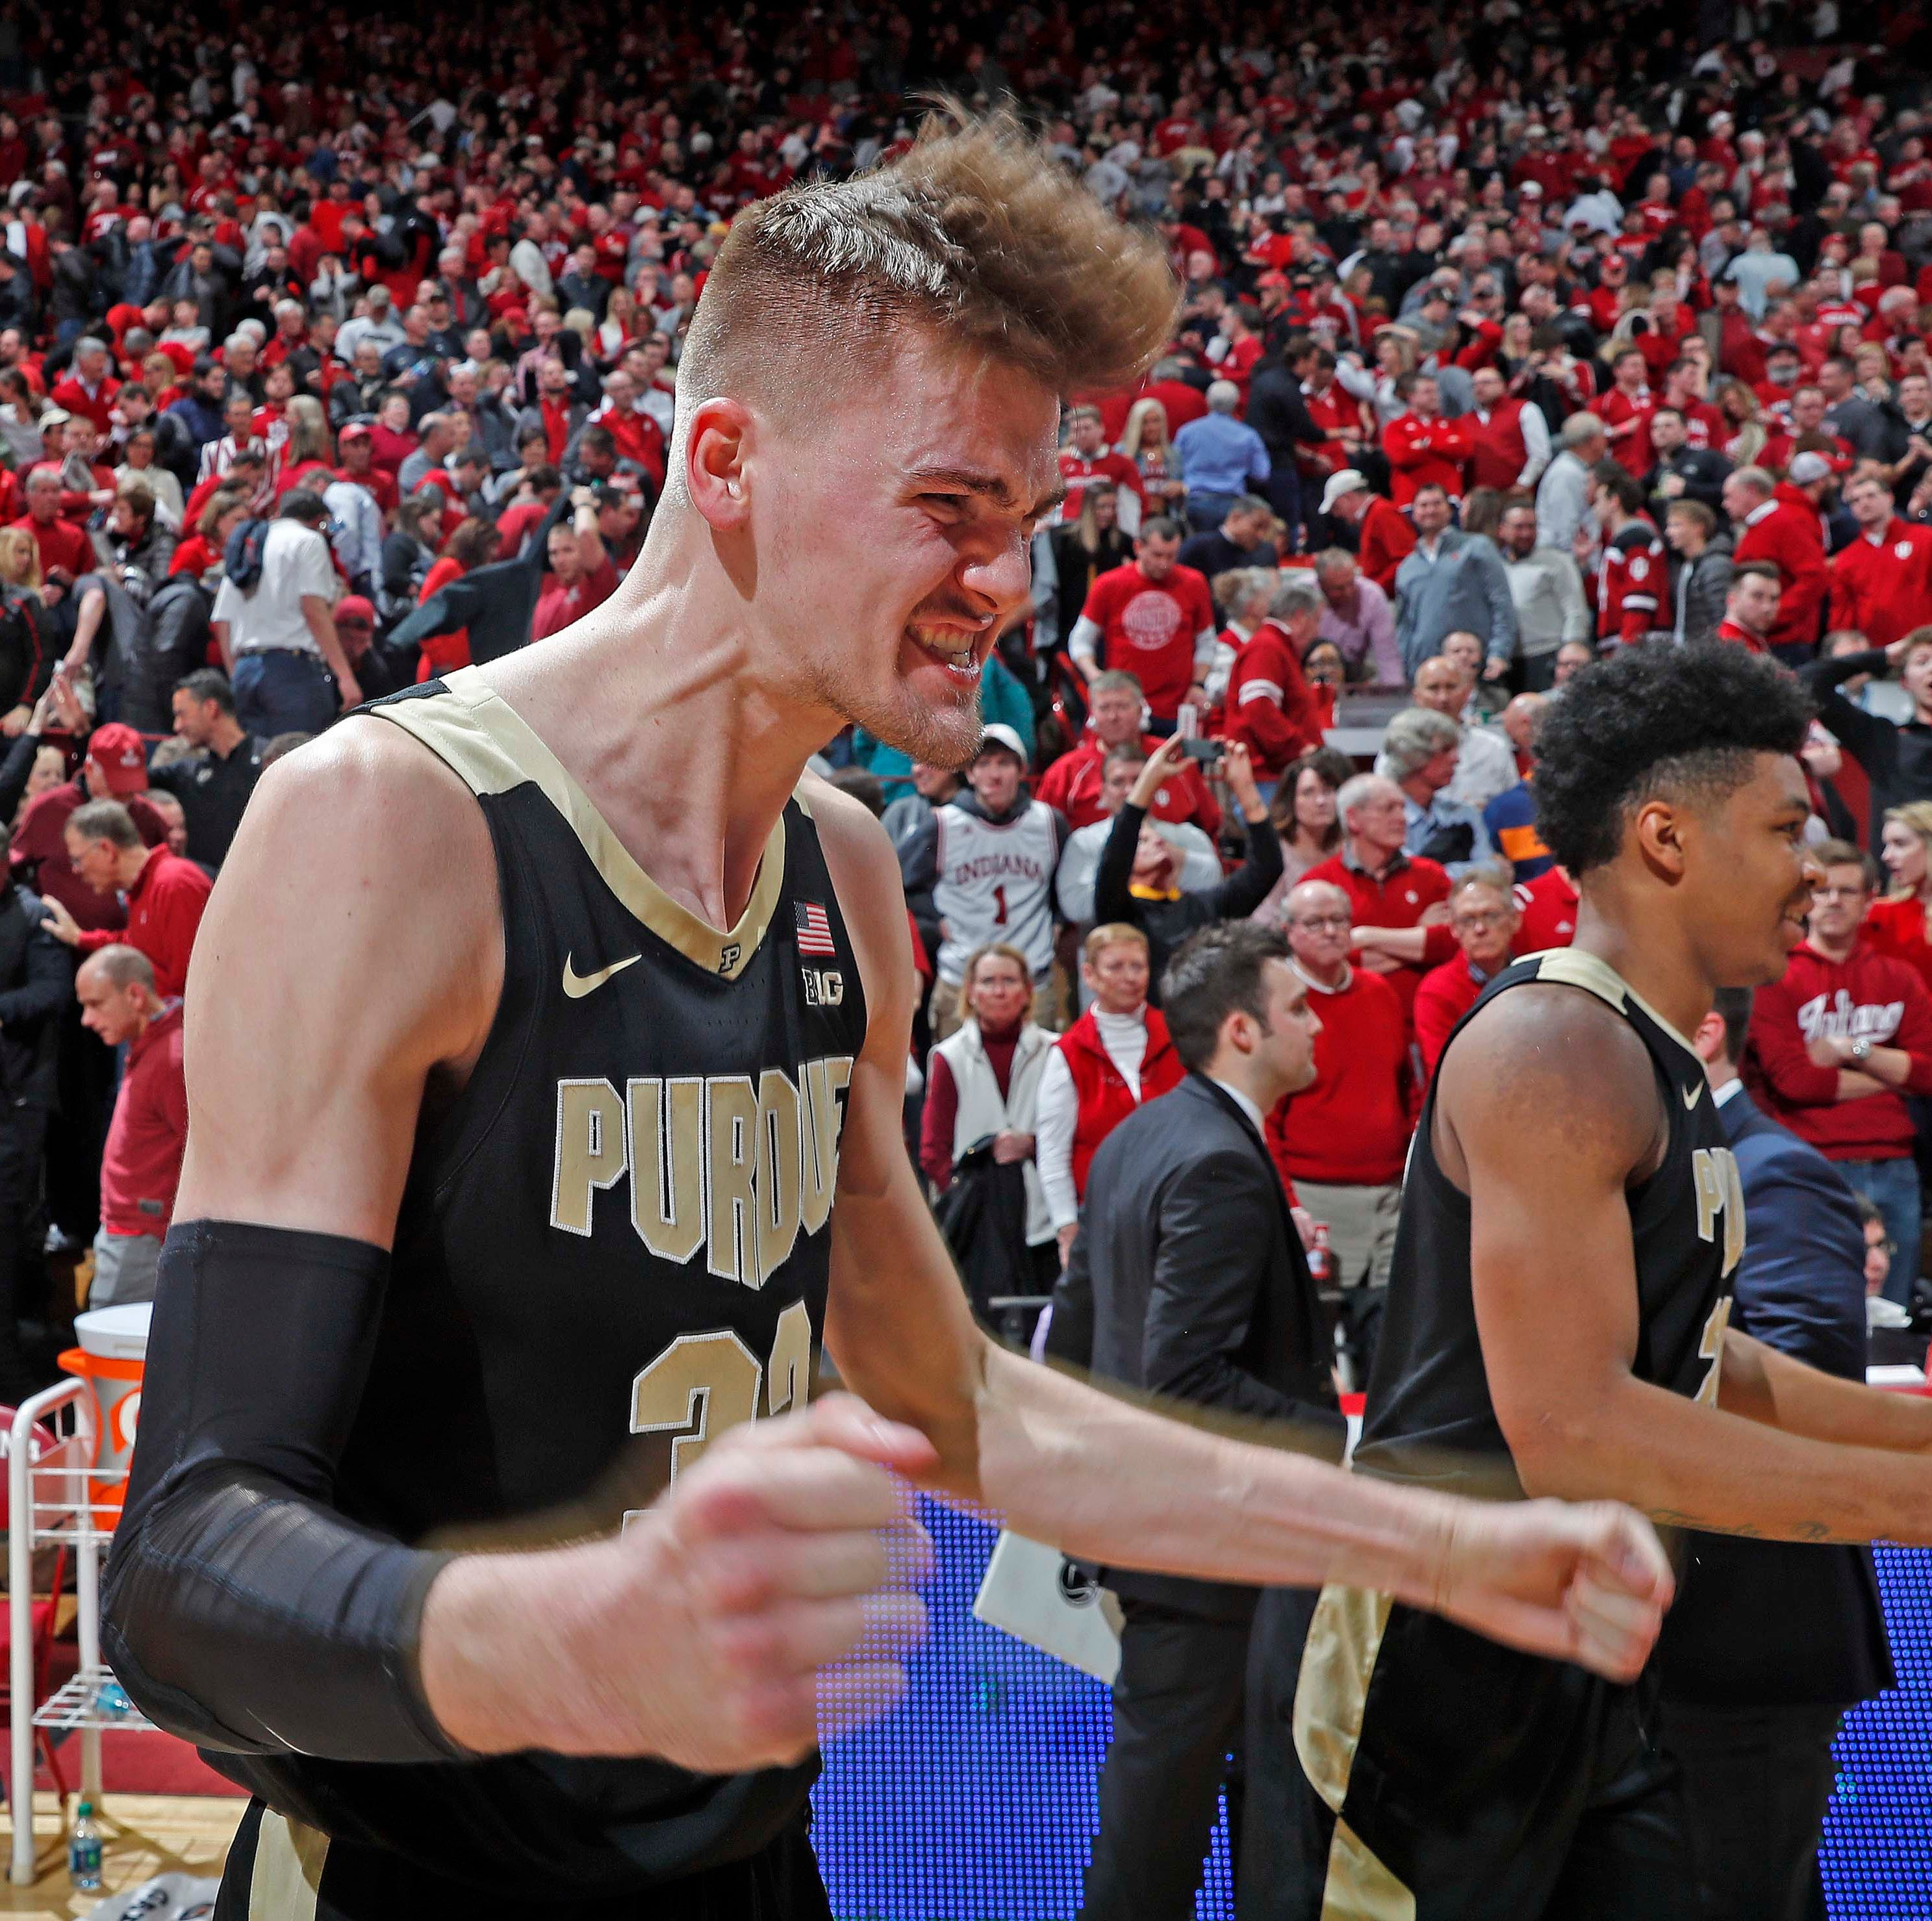 Twitter adores Matt Haarms' game-winning tip in Purdue, Indiana basketball